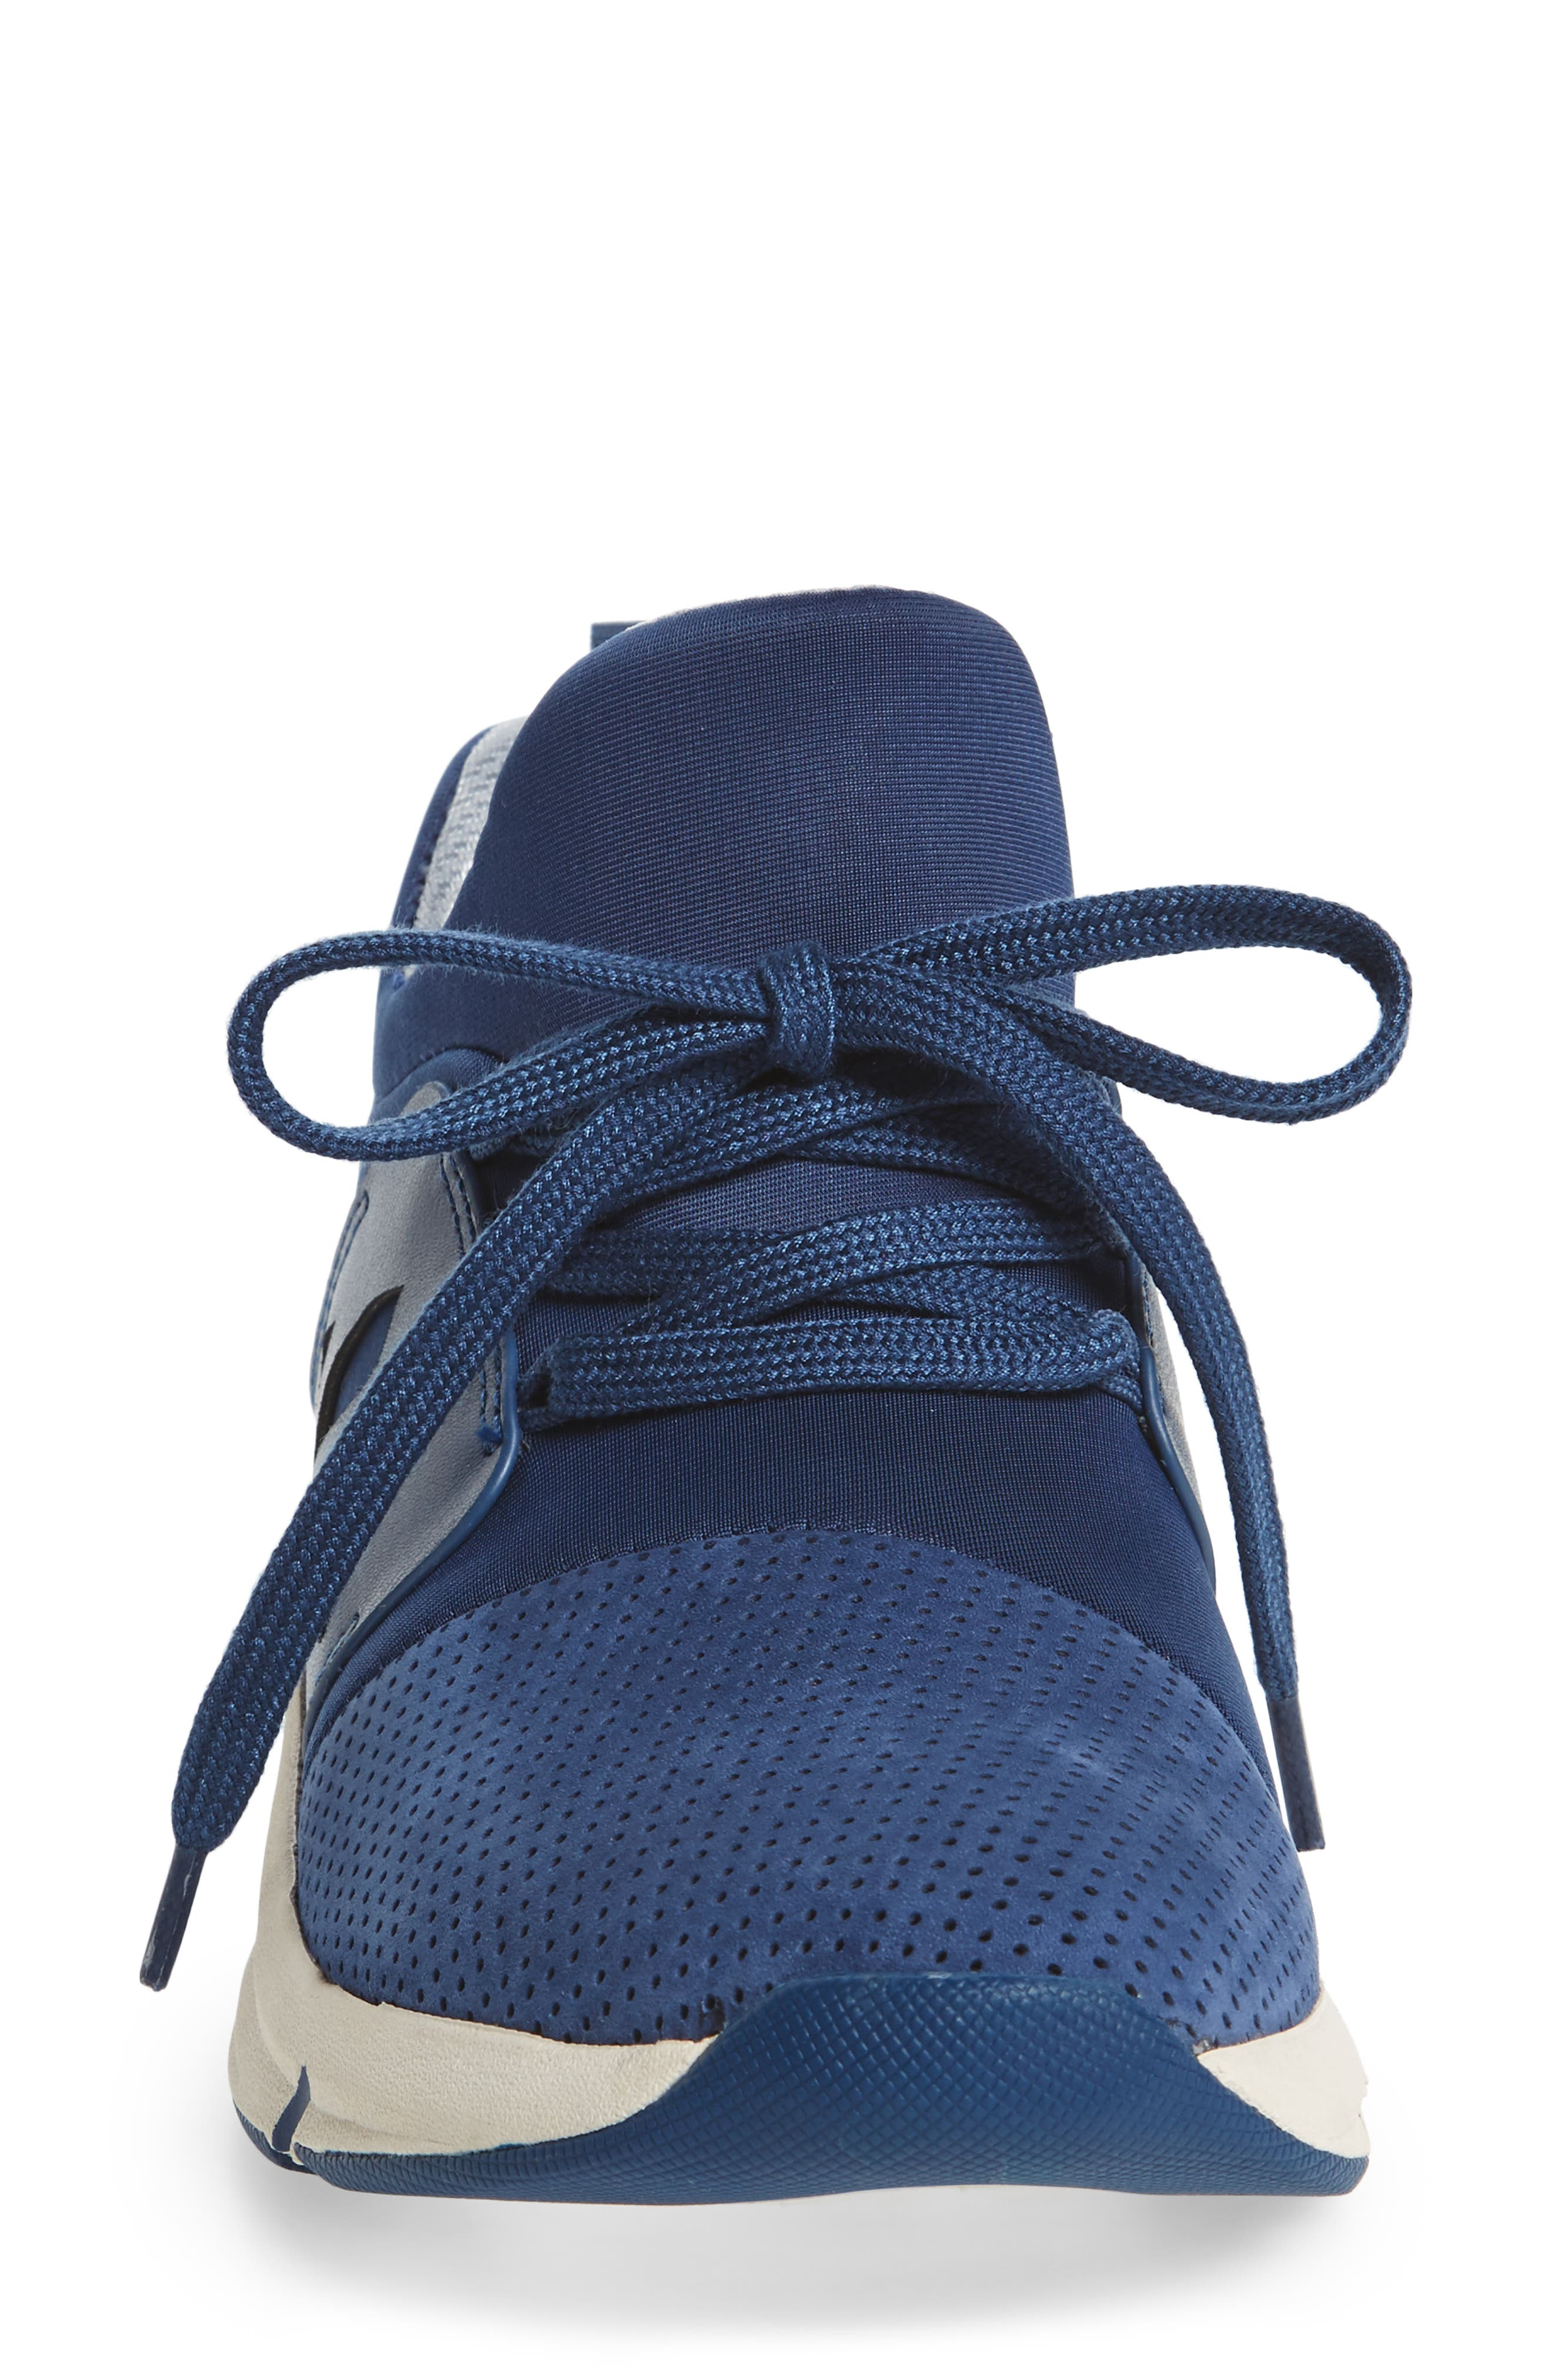 Ordell Sneaker,                             Alternate thumbnail 12, color,